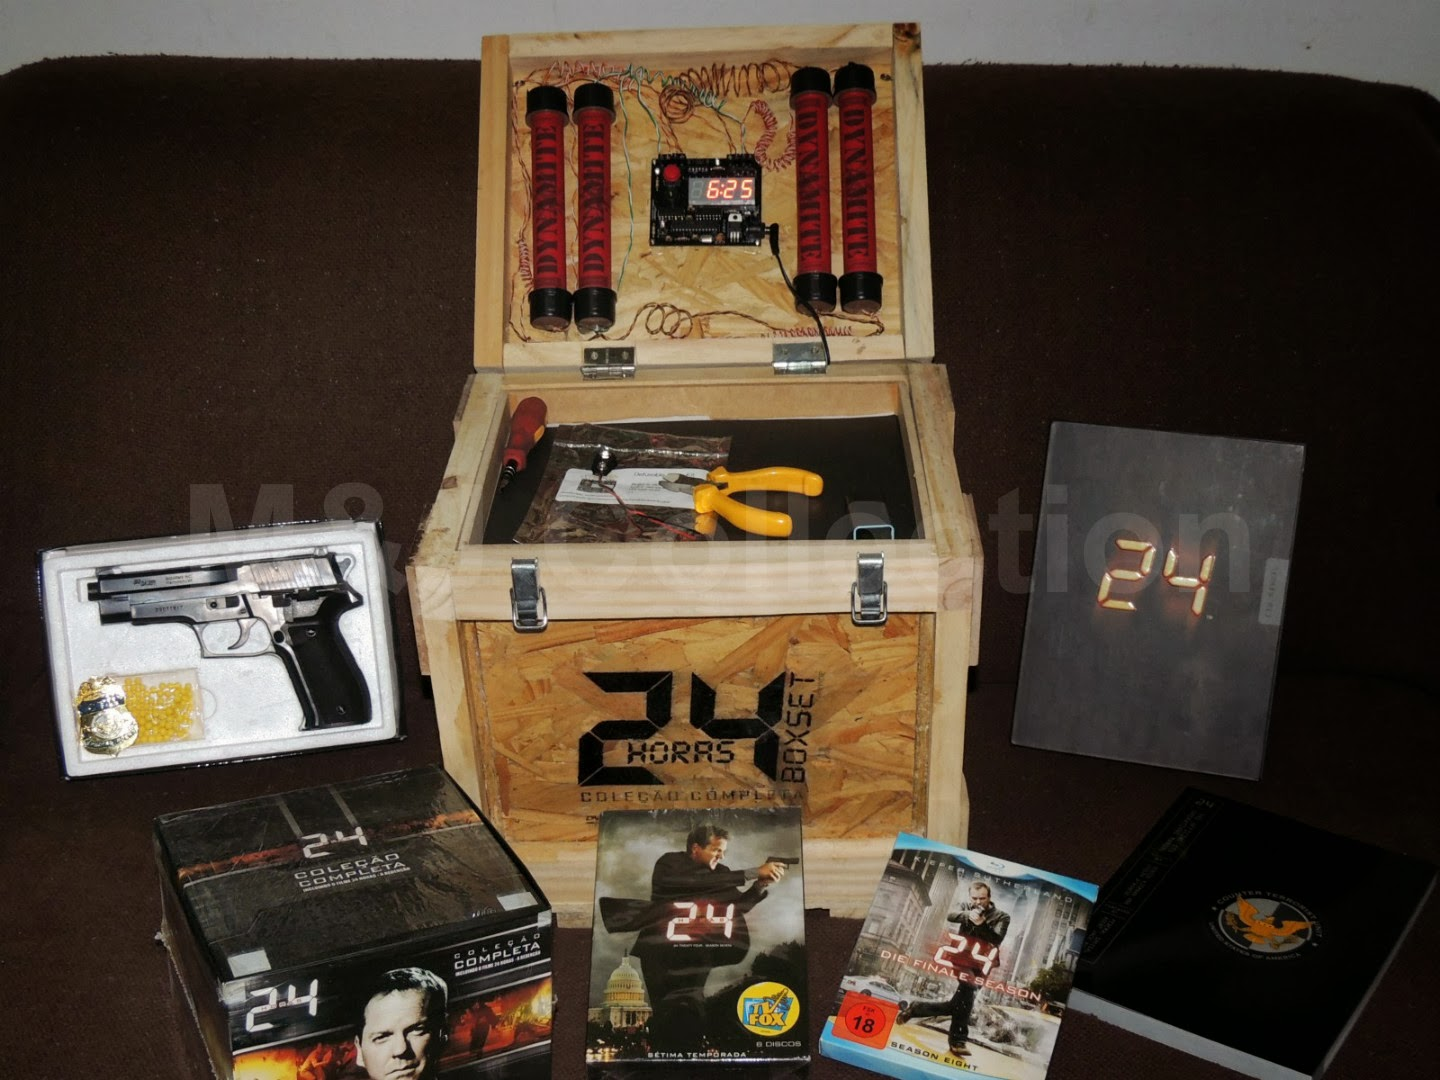 Title 24 The Complete Series Box Set (Fan Edition) Year 2001. Source Edition Brasil Discs Bluray/DVD Features Wodden Box; CTU Operations Manual; ...  sc 1 st  Mu0026Ju0027s Collection - blogger & Mu0026Ju0027s Collection: 24: The Complete Series Box Set (Fan Edition) Aboutintivar.Com